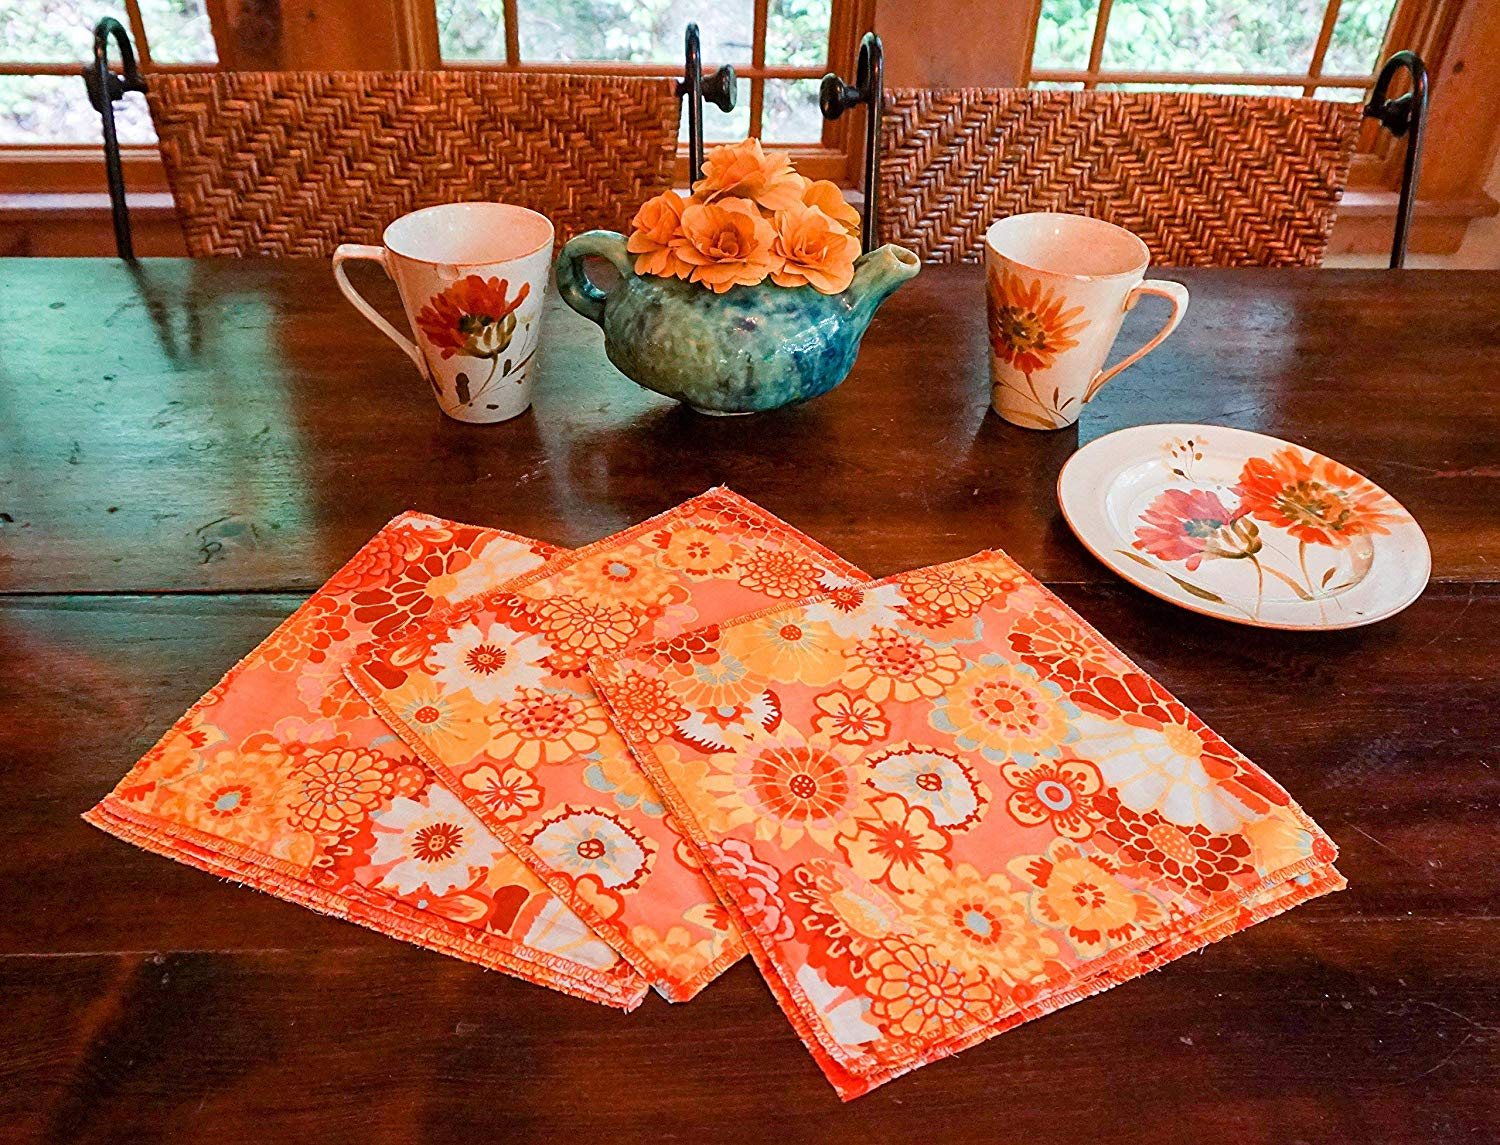 Cloth Napkins-Summer Table Decor-Flower Napkins-Boho Table Decor-Shabby Chic Table-Yellow Napkins-Party Decor-Cottage Decor-Home Decor Gift